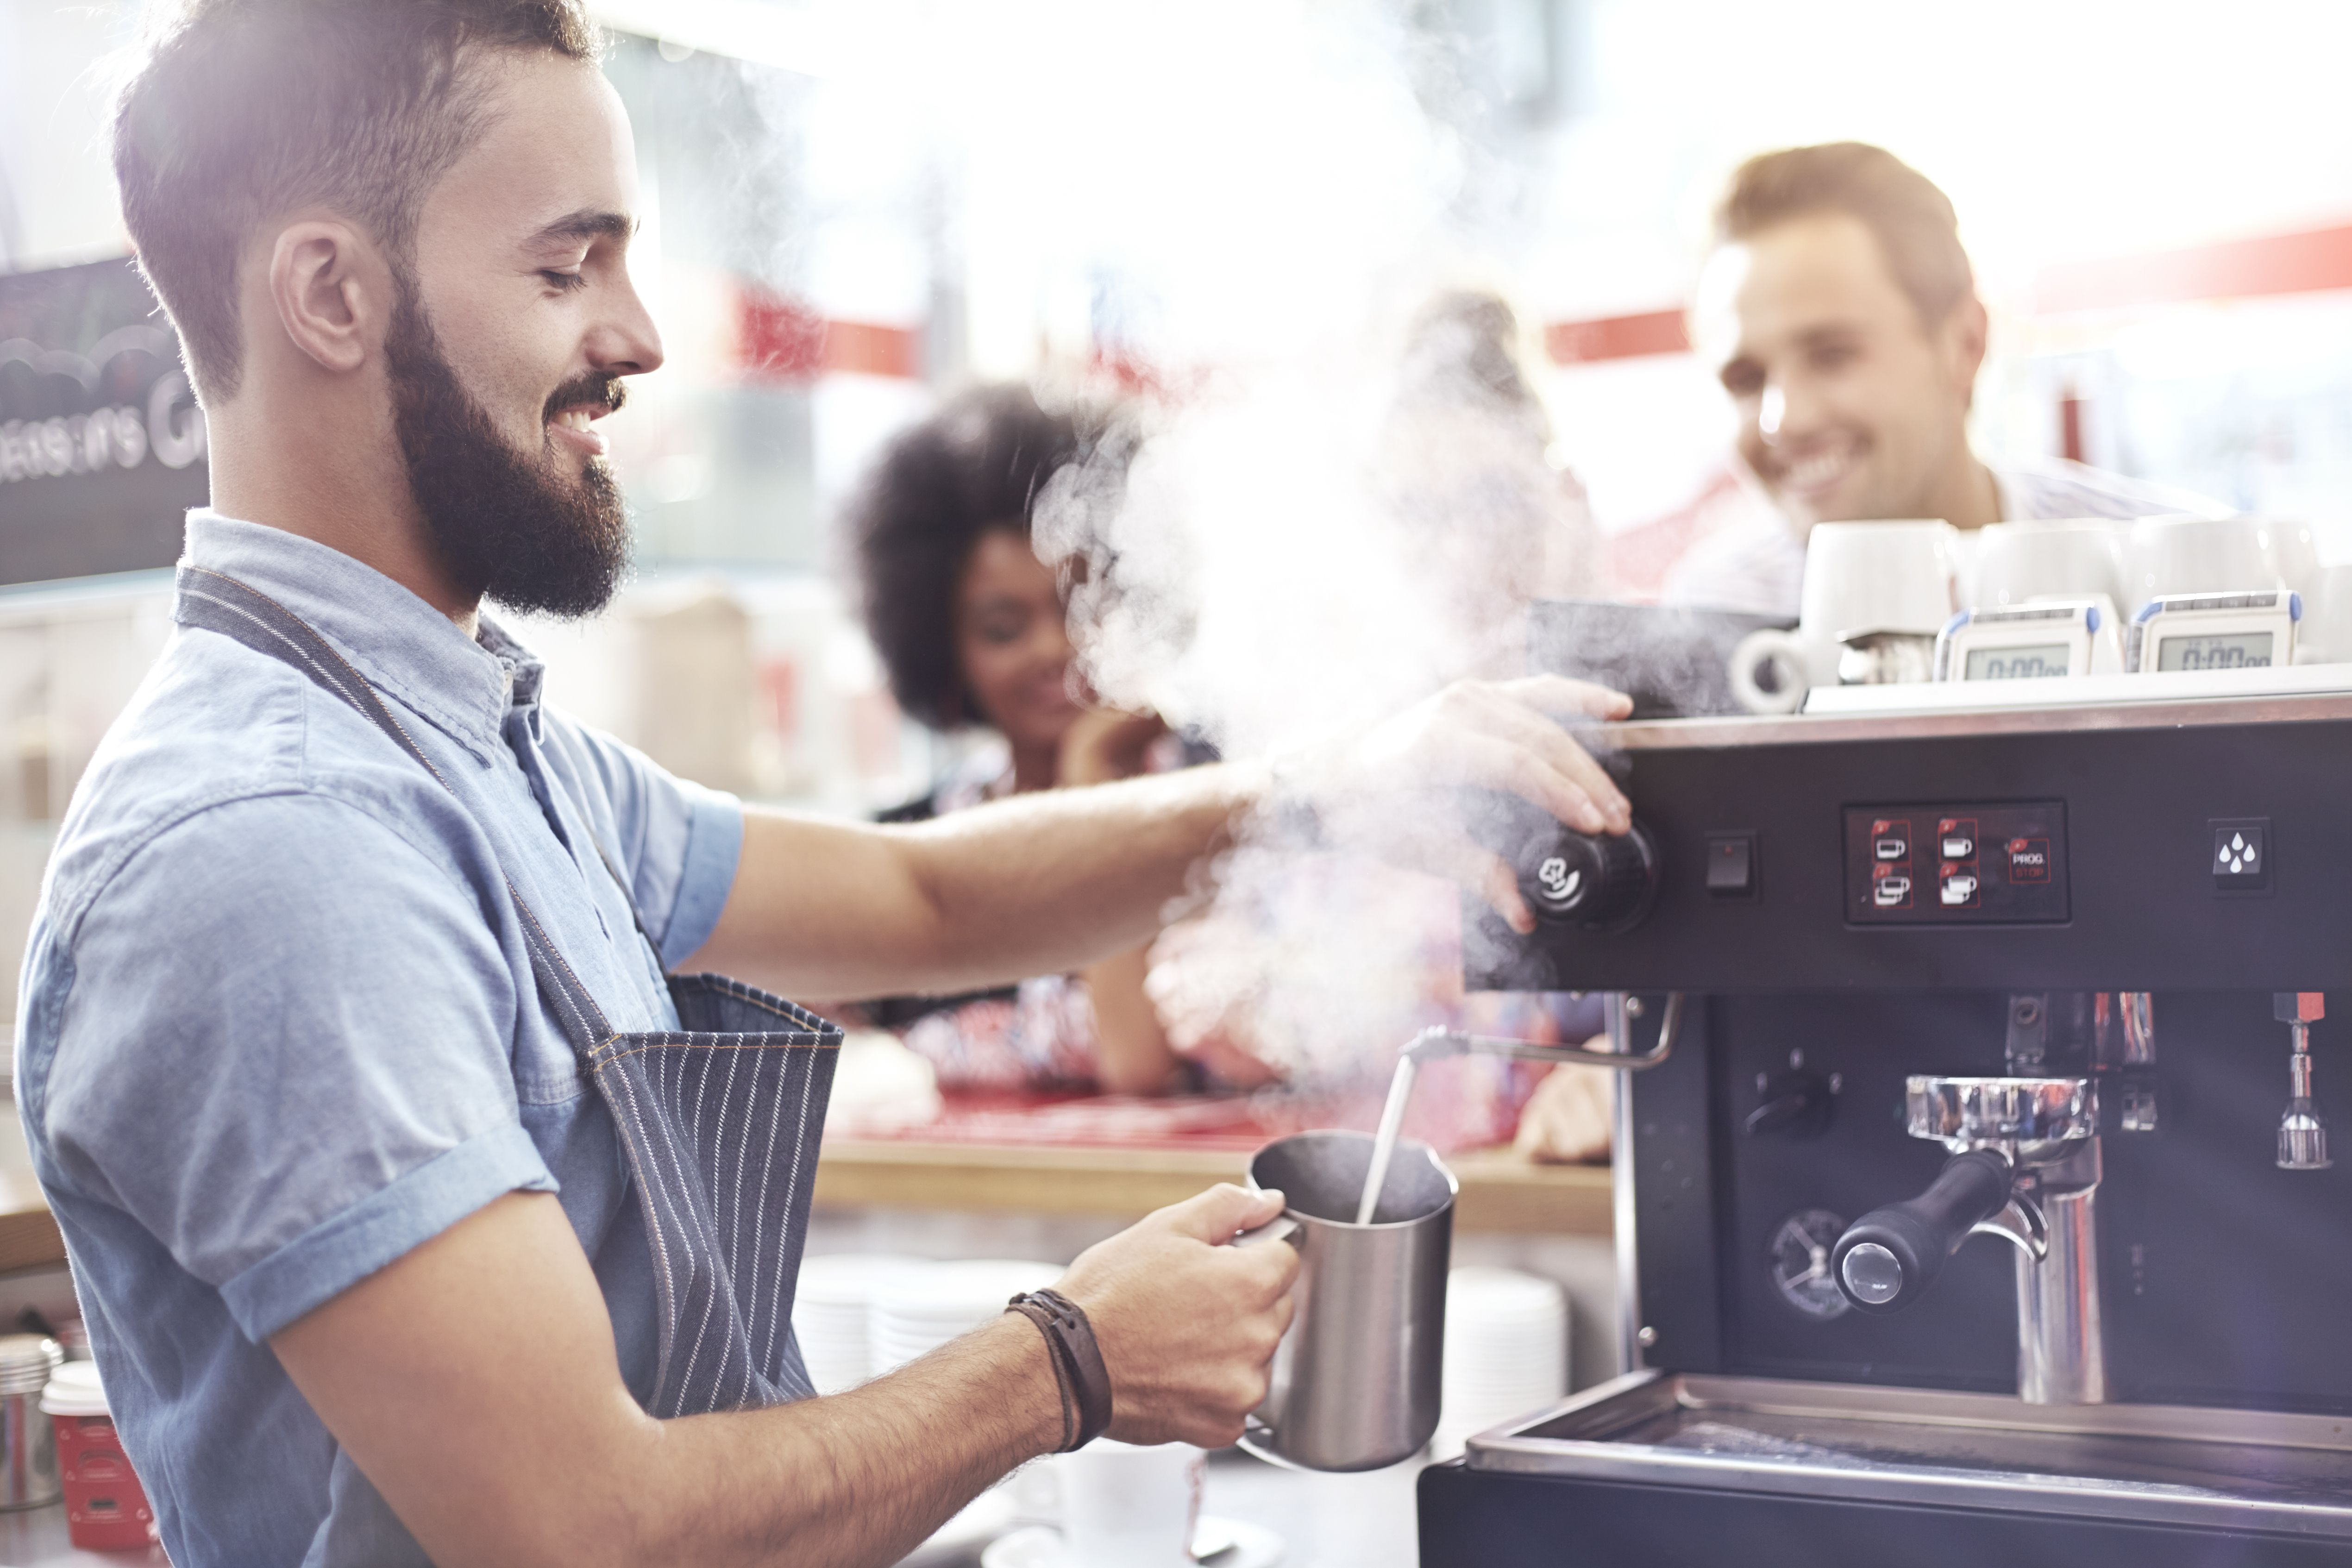 top job interview questions for cafe workers and baristas